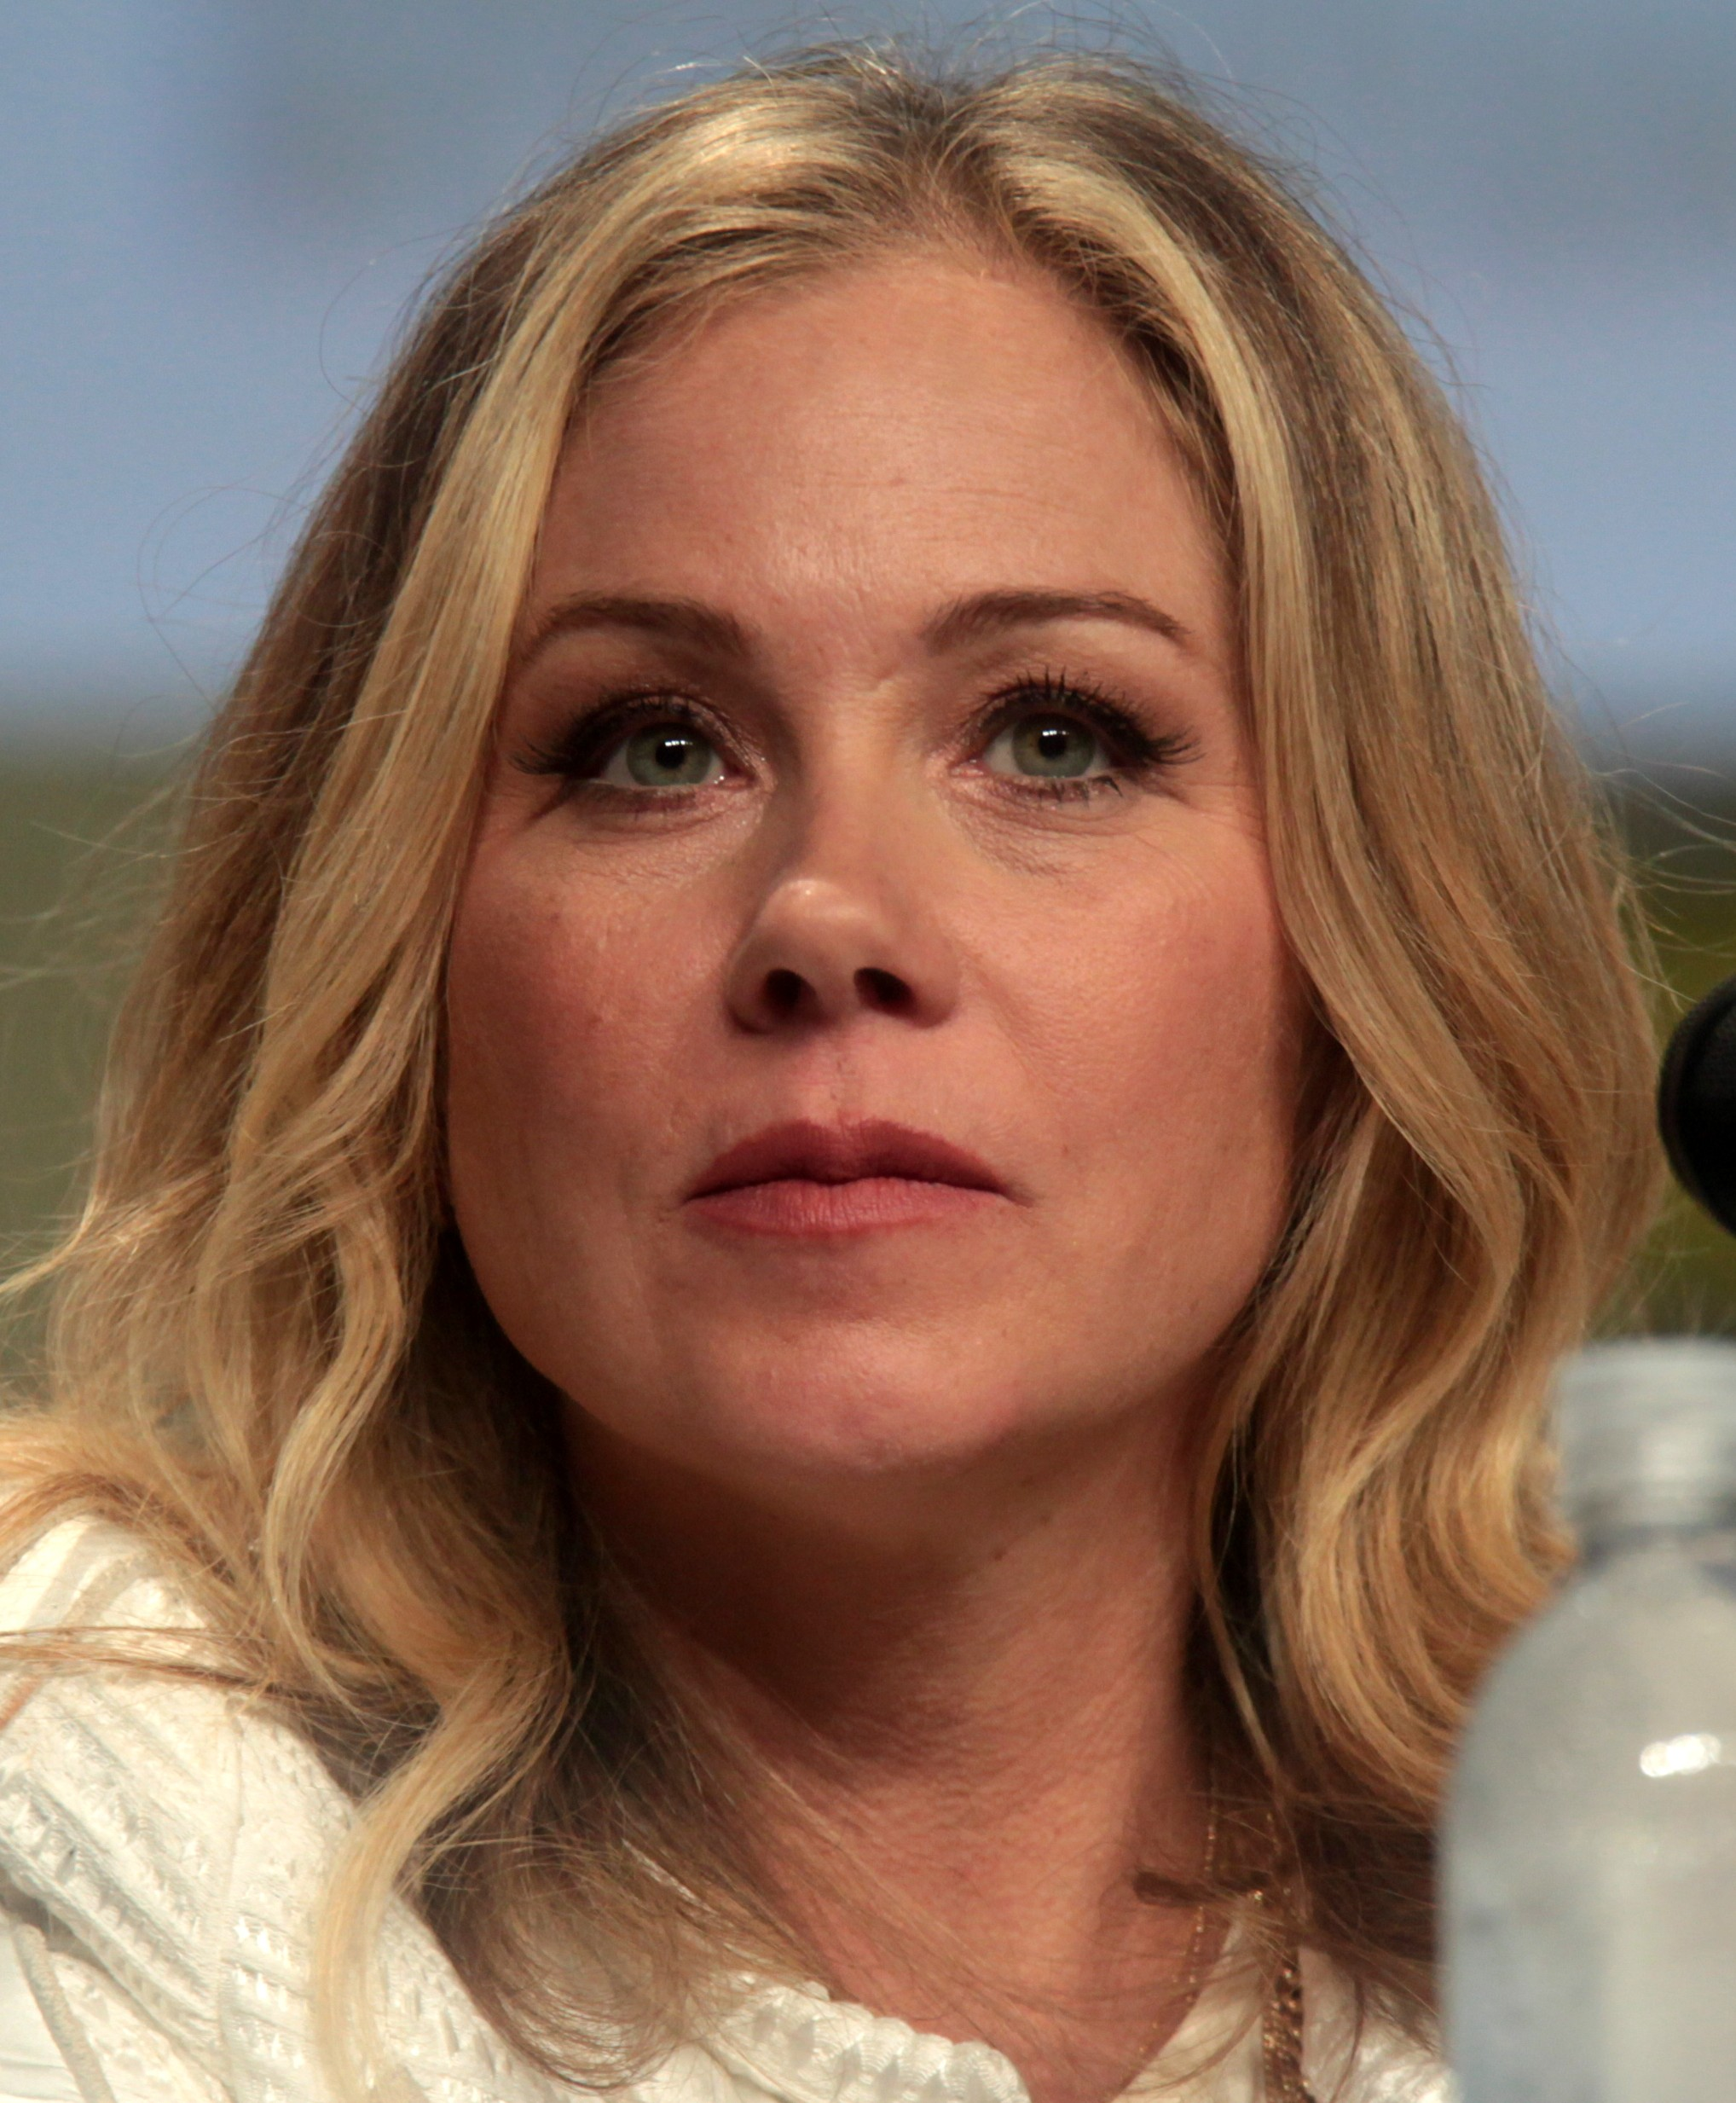 Christina Applegate Wikipedia The Free Encyclopedia